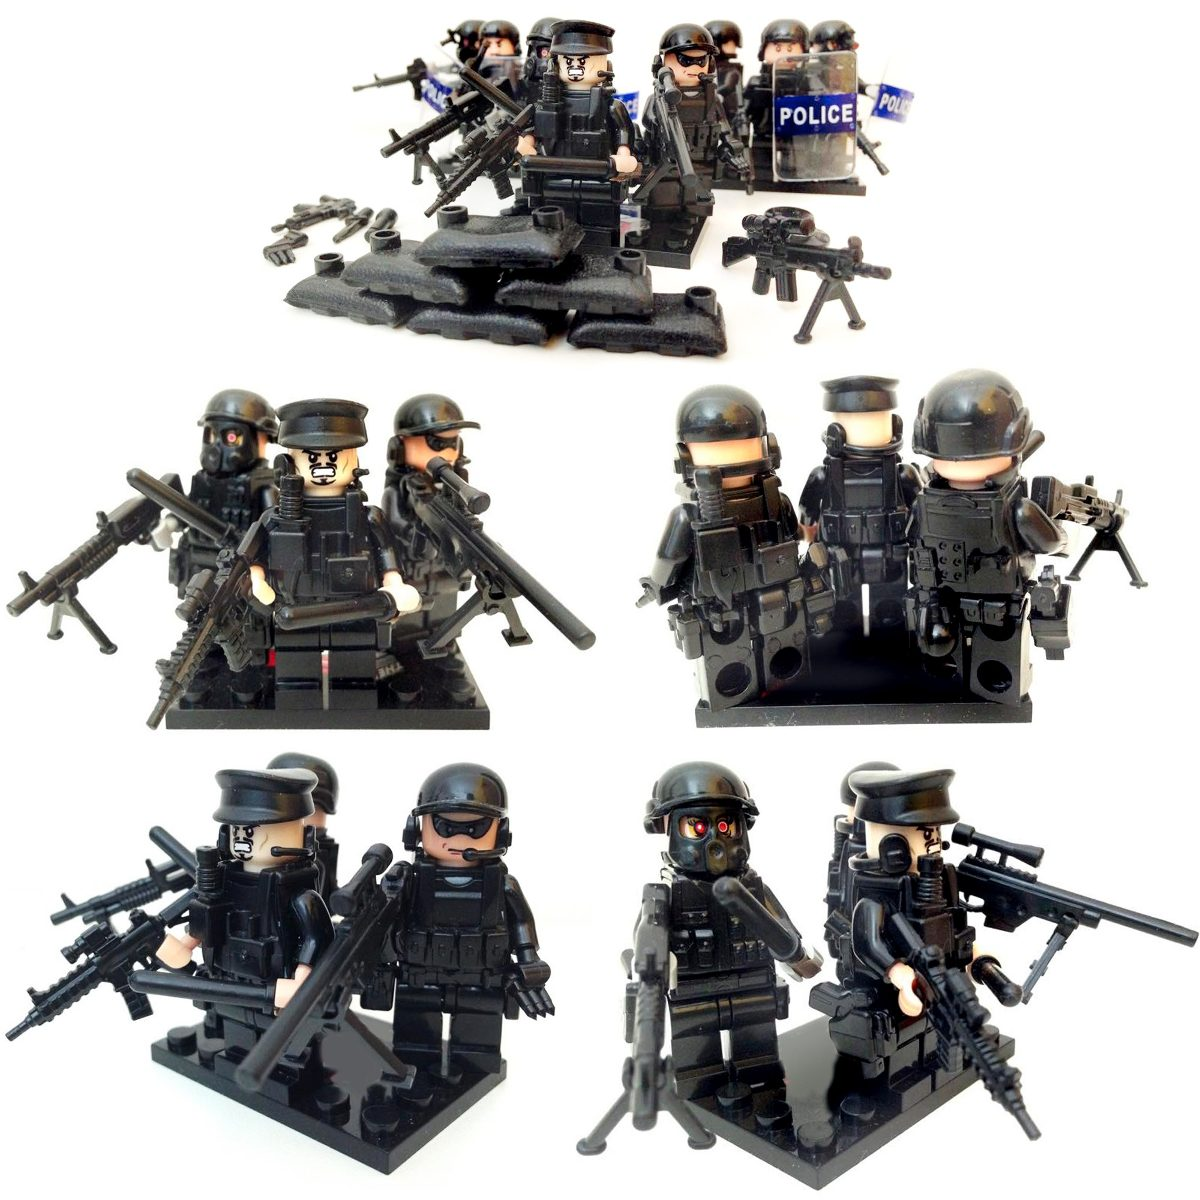 lego helicopter army with Mlb 721438721 Lego Bope Swat Policia Tropa De Elite City Riot Control Lote  Jm on Watch additionally True Heroes C130 Sighted 10622 moreover 107314 Moc 60051 Club Car And Extended Car likewise 8277628617 in addition Watch.